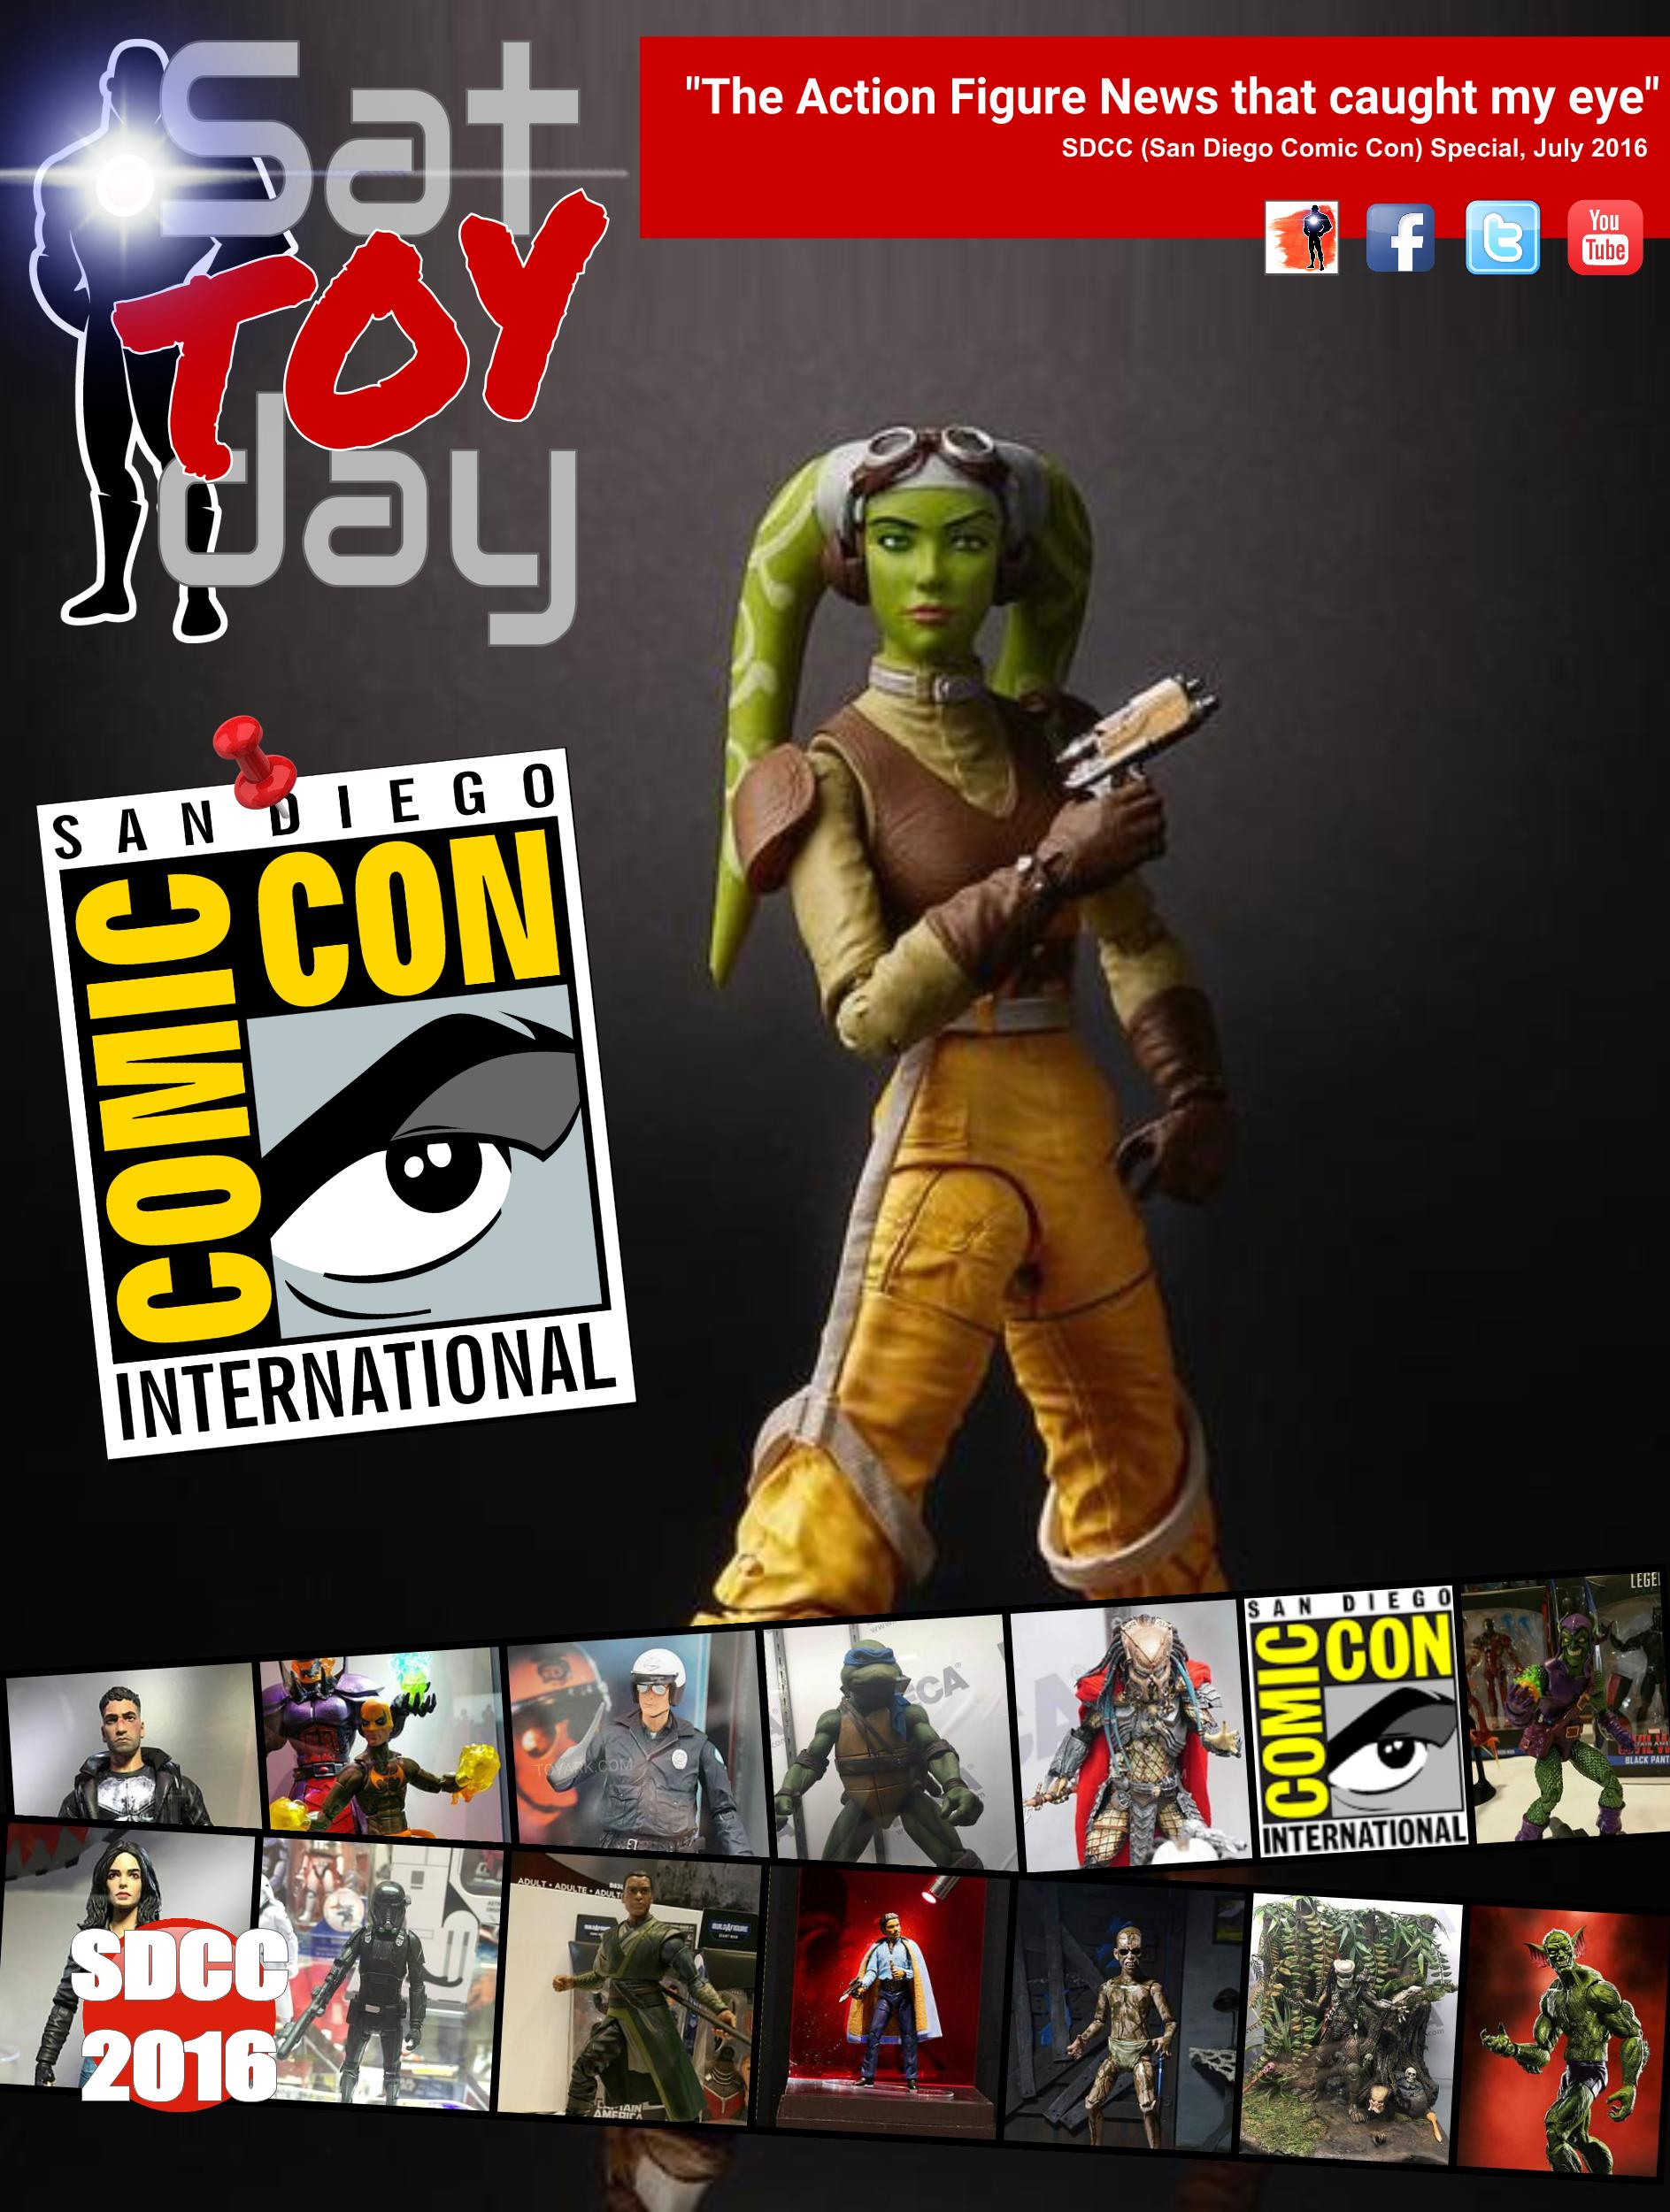 033b Action Figure Sat-TOY-day News, SDCC 2016 Special